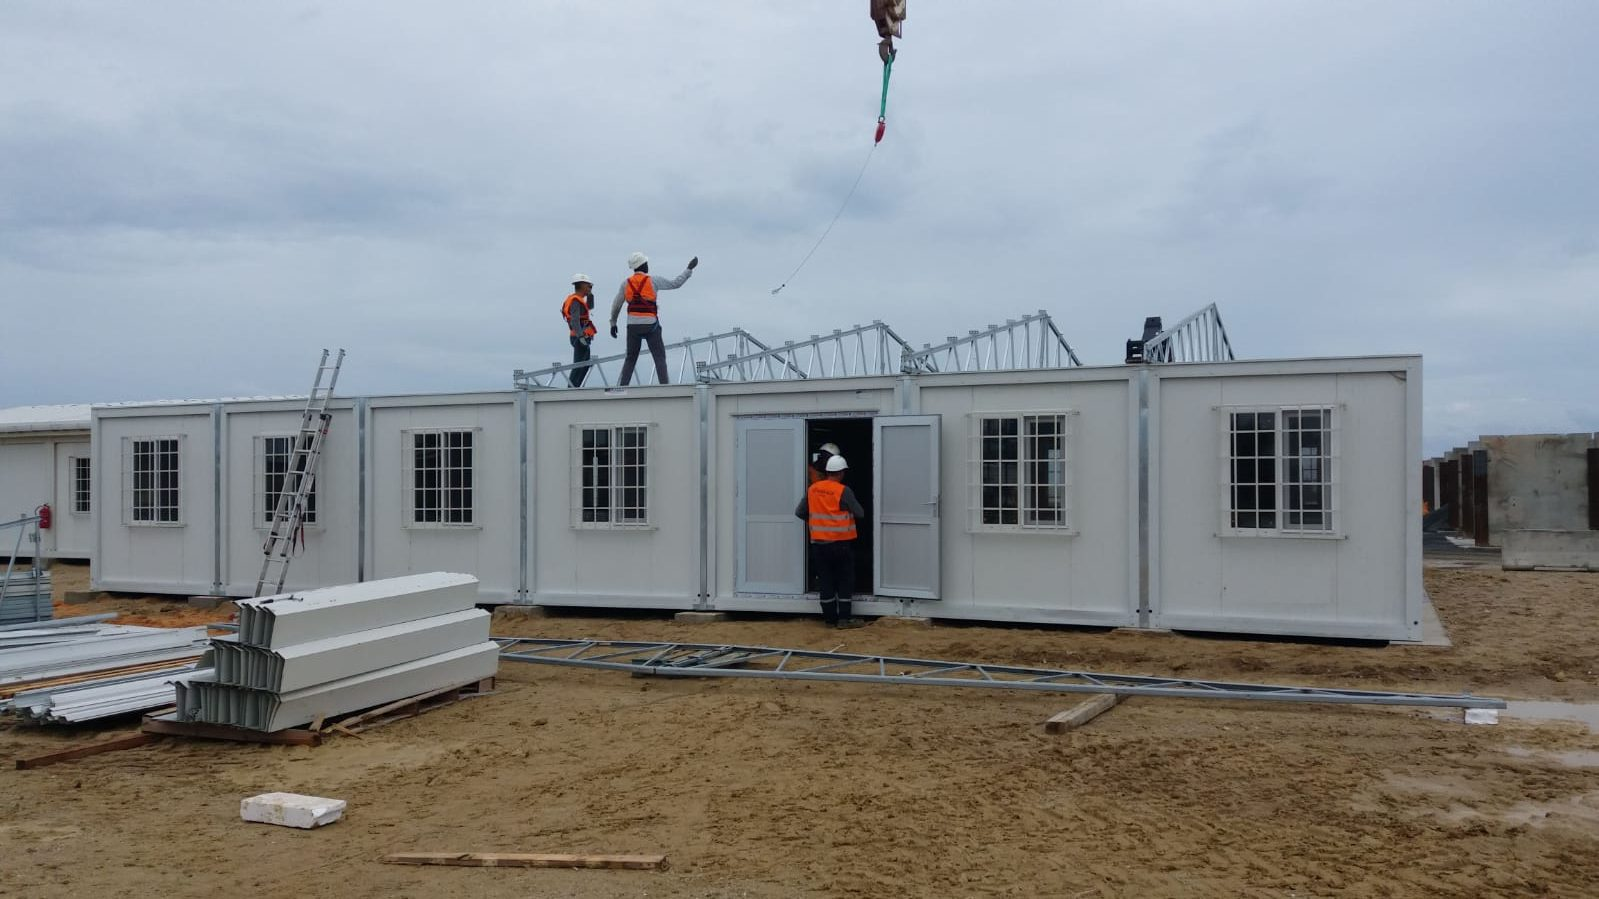 Delivery and installation of prefabricated buildings in Senegal